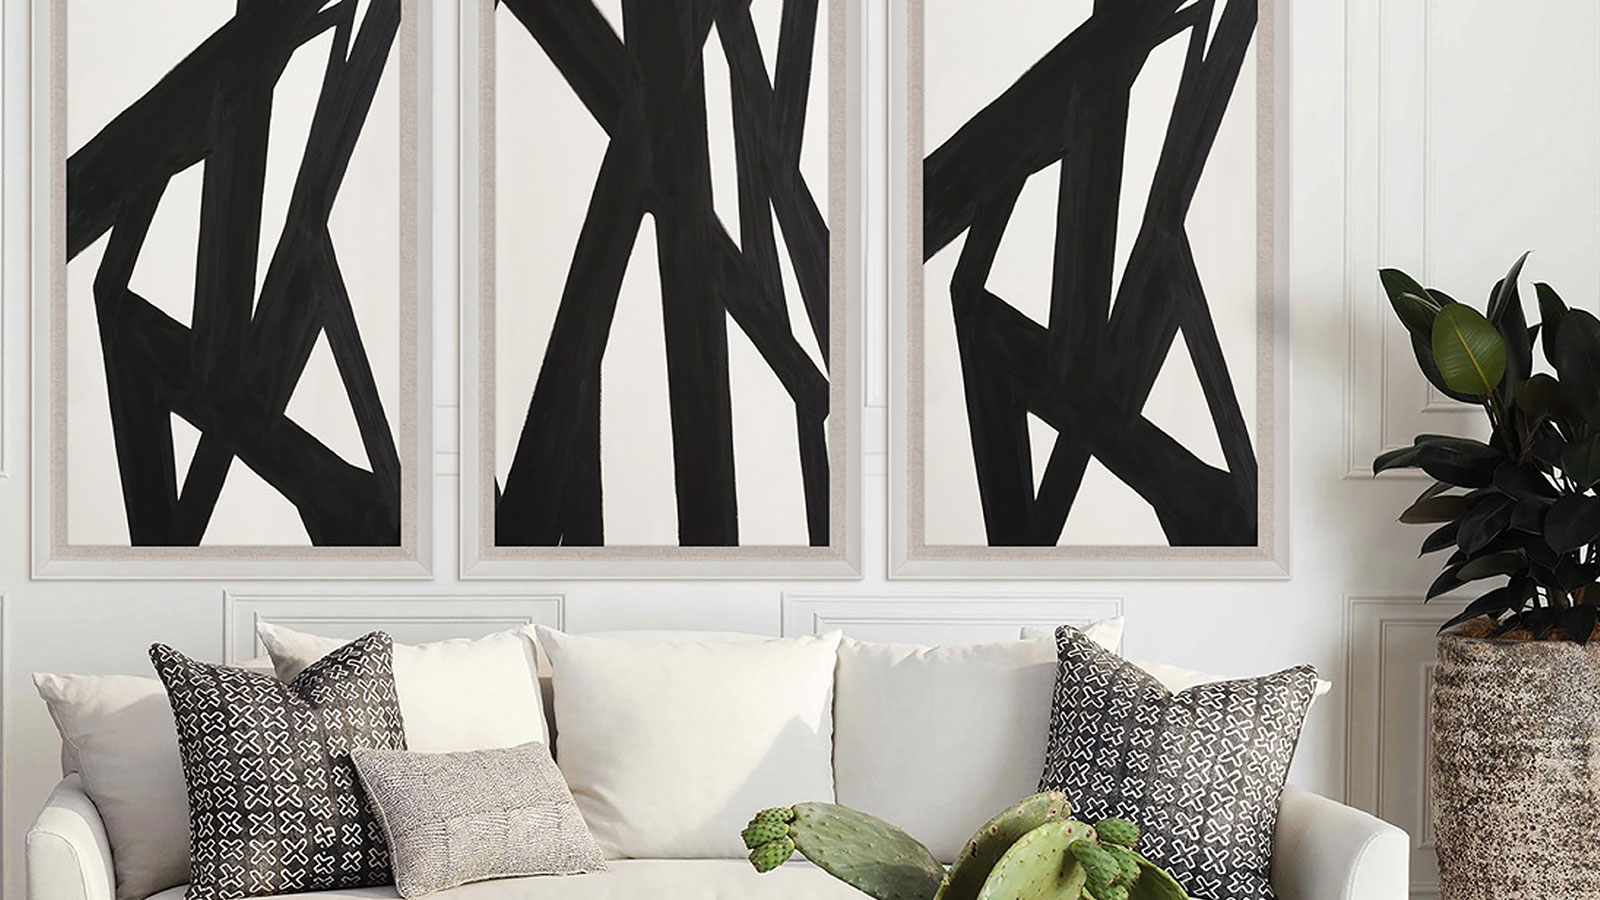 Handmade Paper - Pattern - Abstract Wall Art